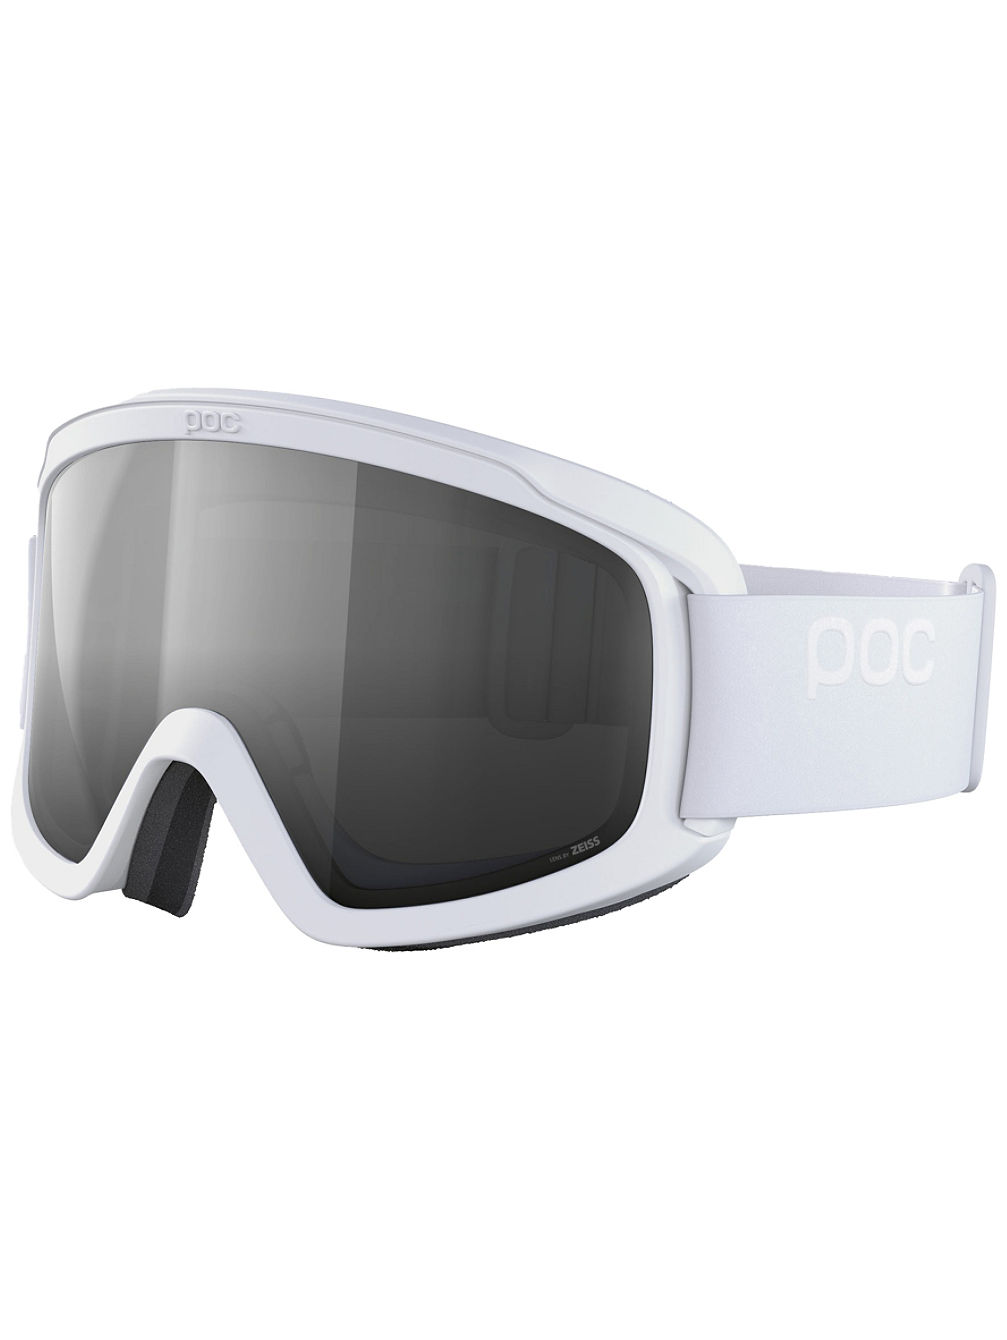 Opsin All White Goggle